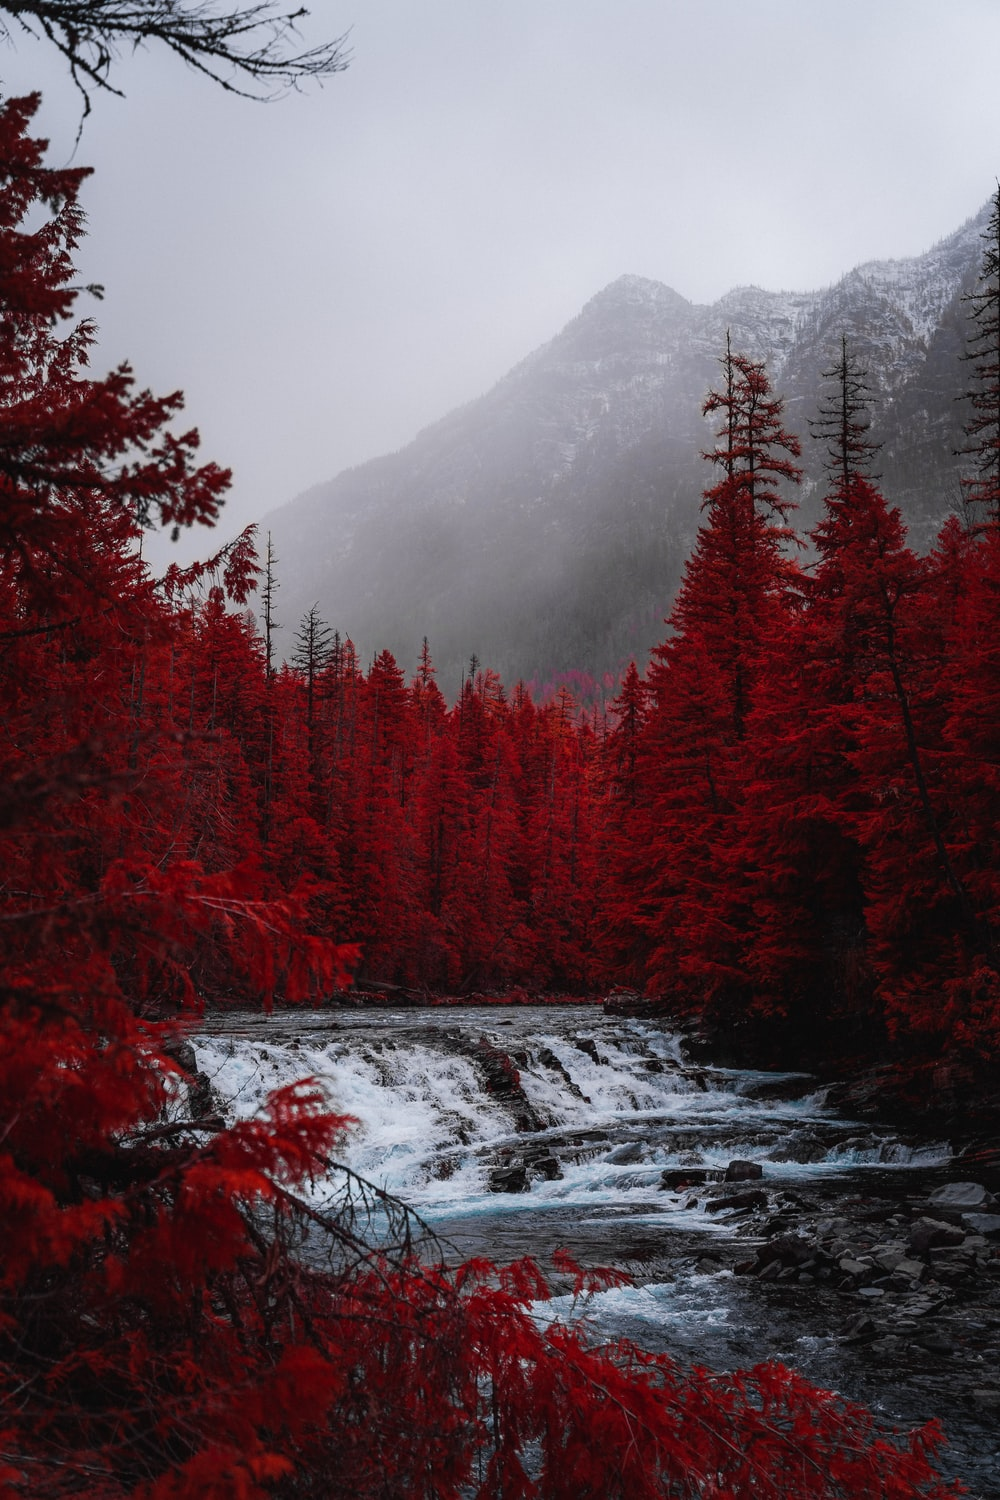 river waterfalls near red trees